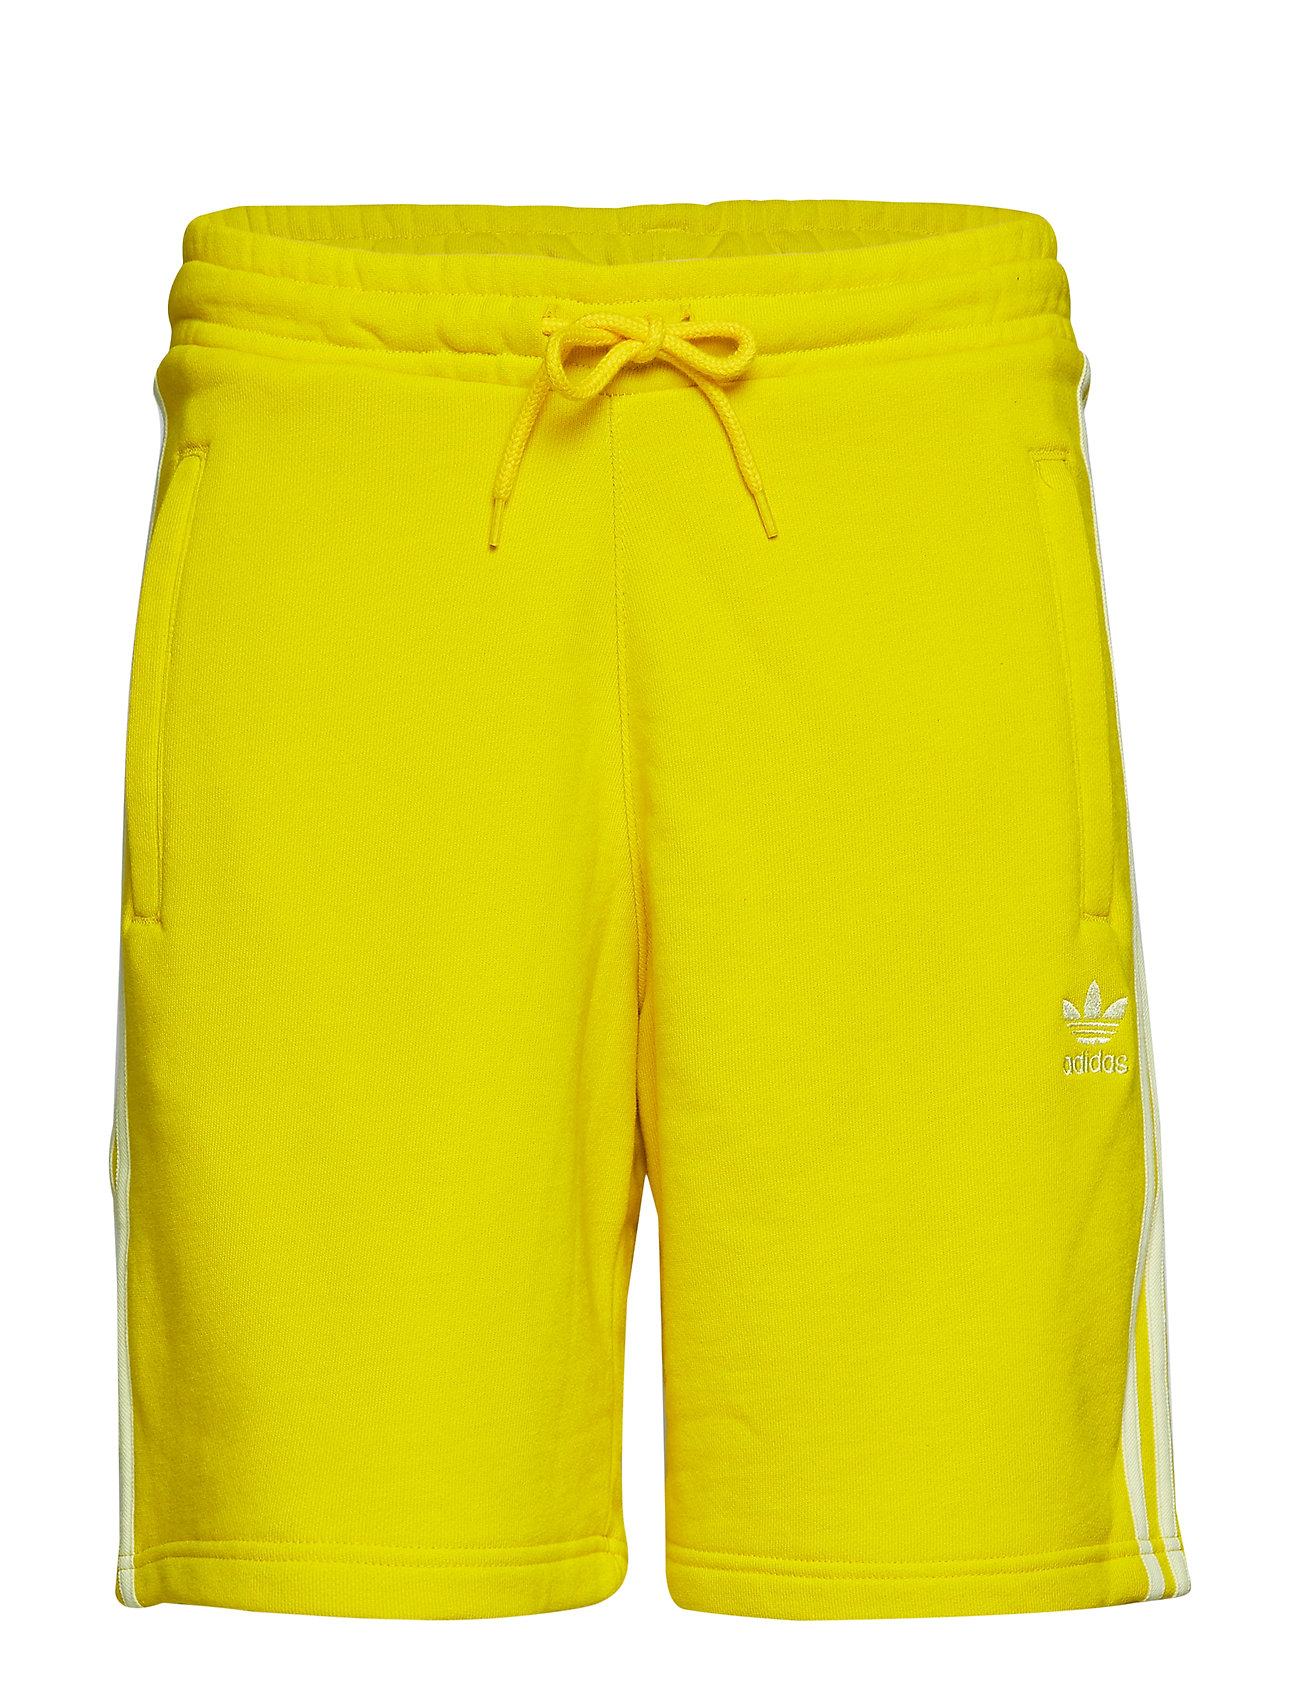 adidas Originals BLC 3-S SHORT - YELLOW